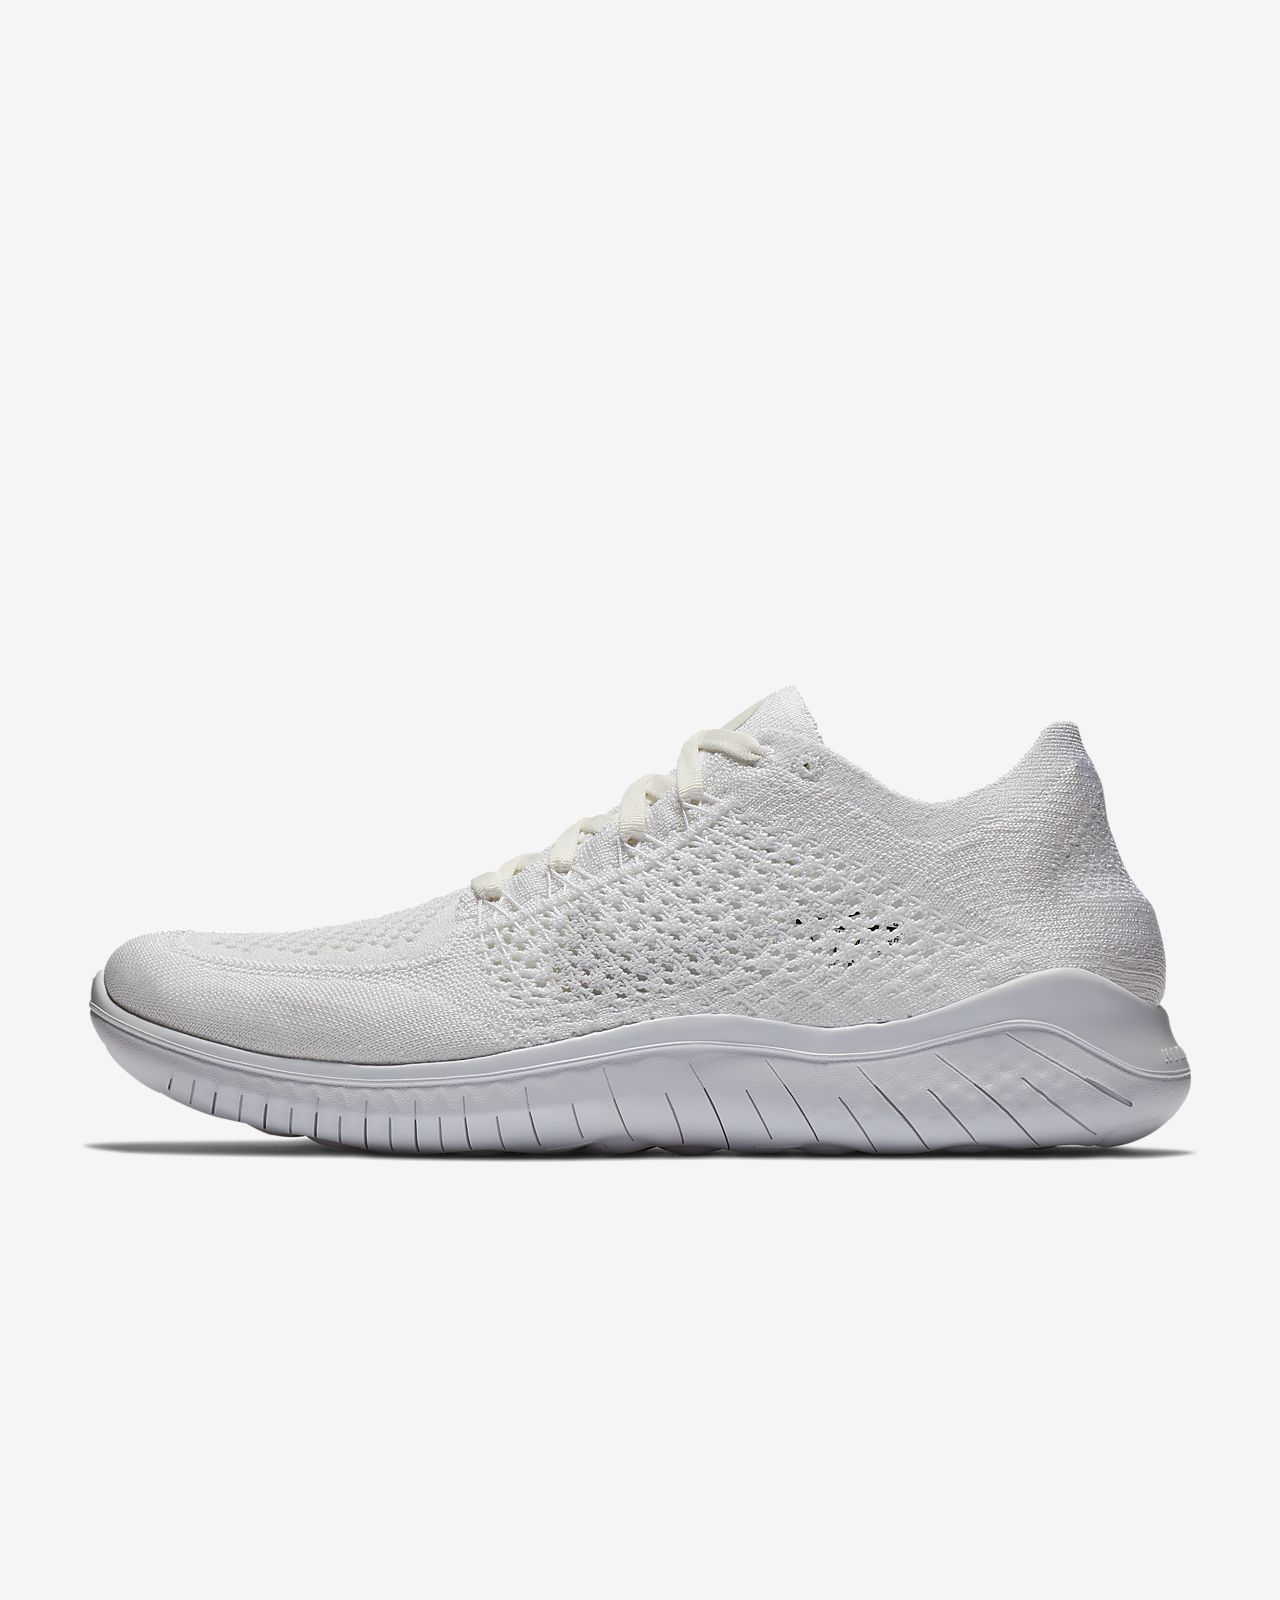 buy popular 9b3d2 f6a7f ... Nike Free RN Flyknit 2018 Men s Running Shoe